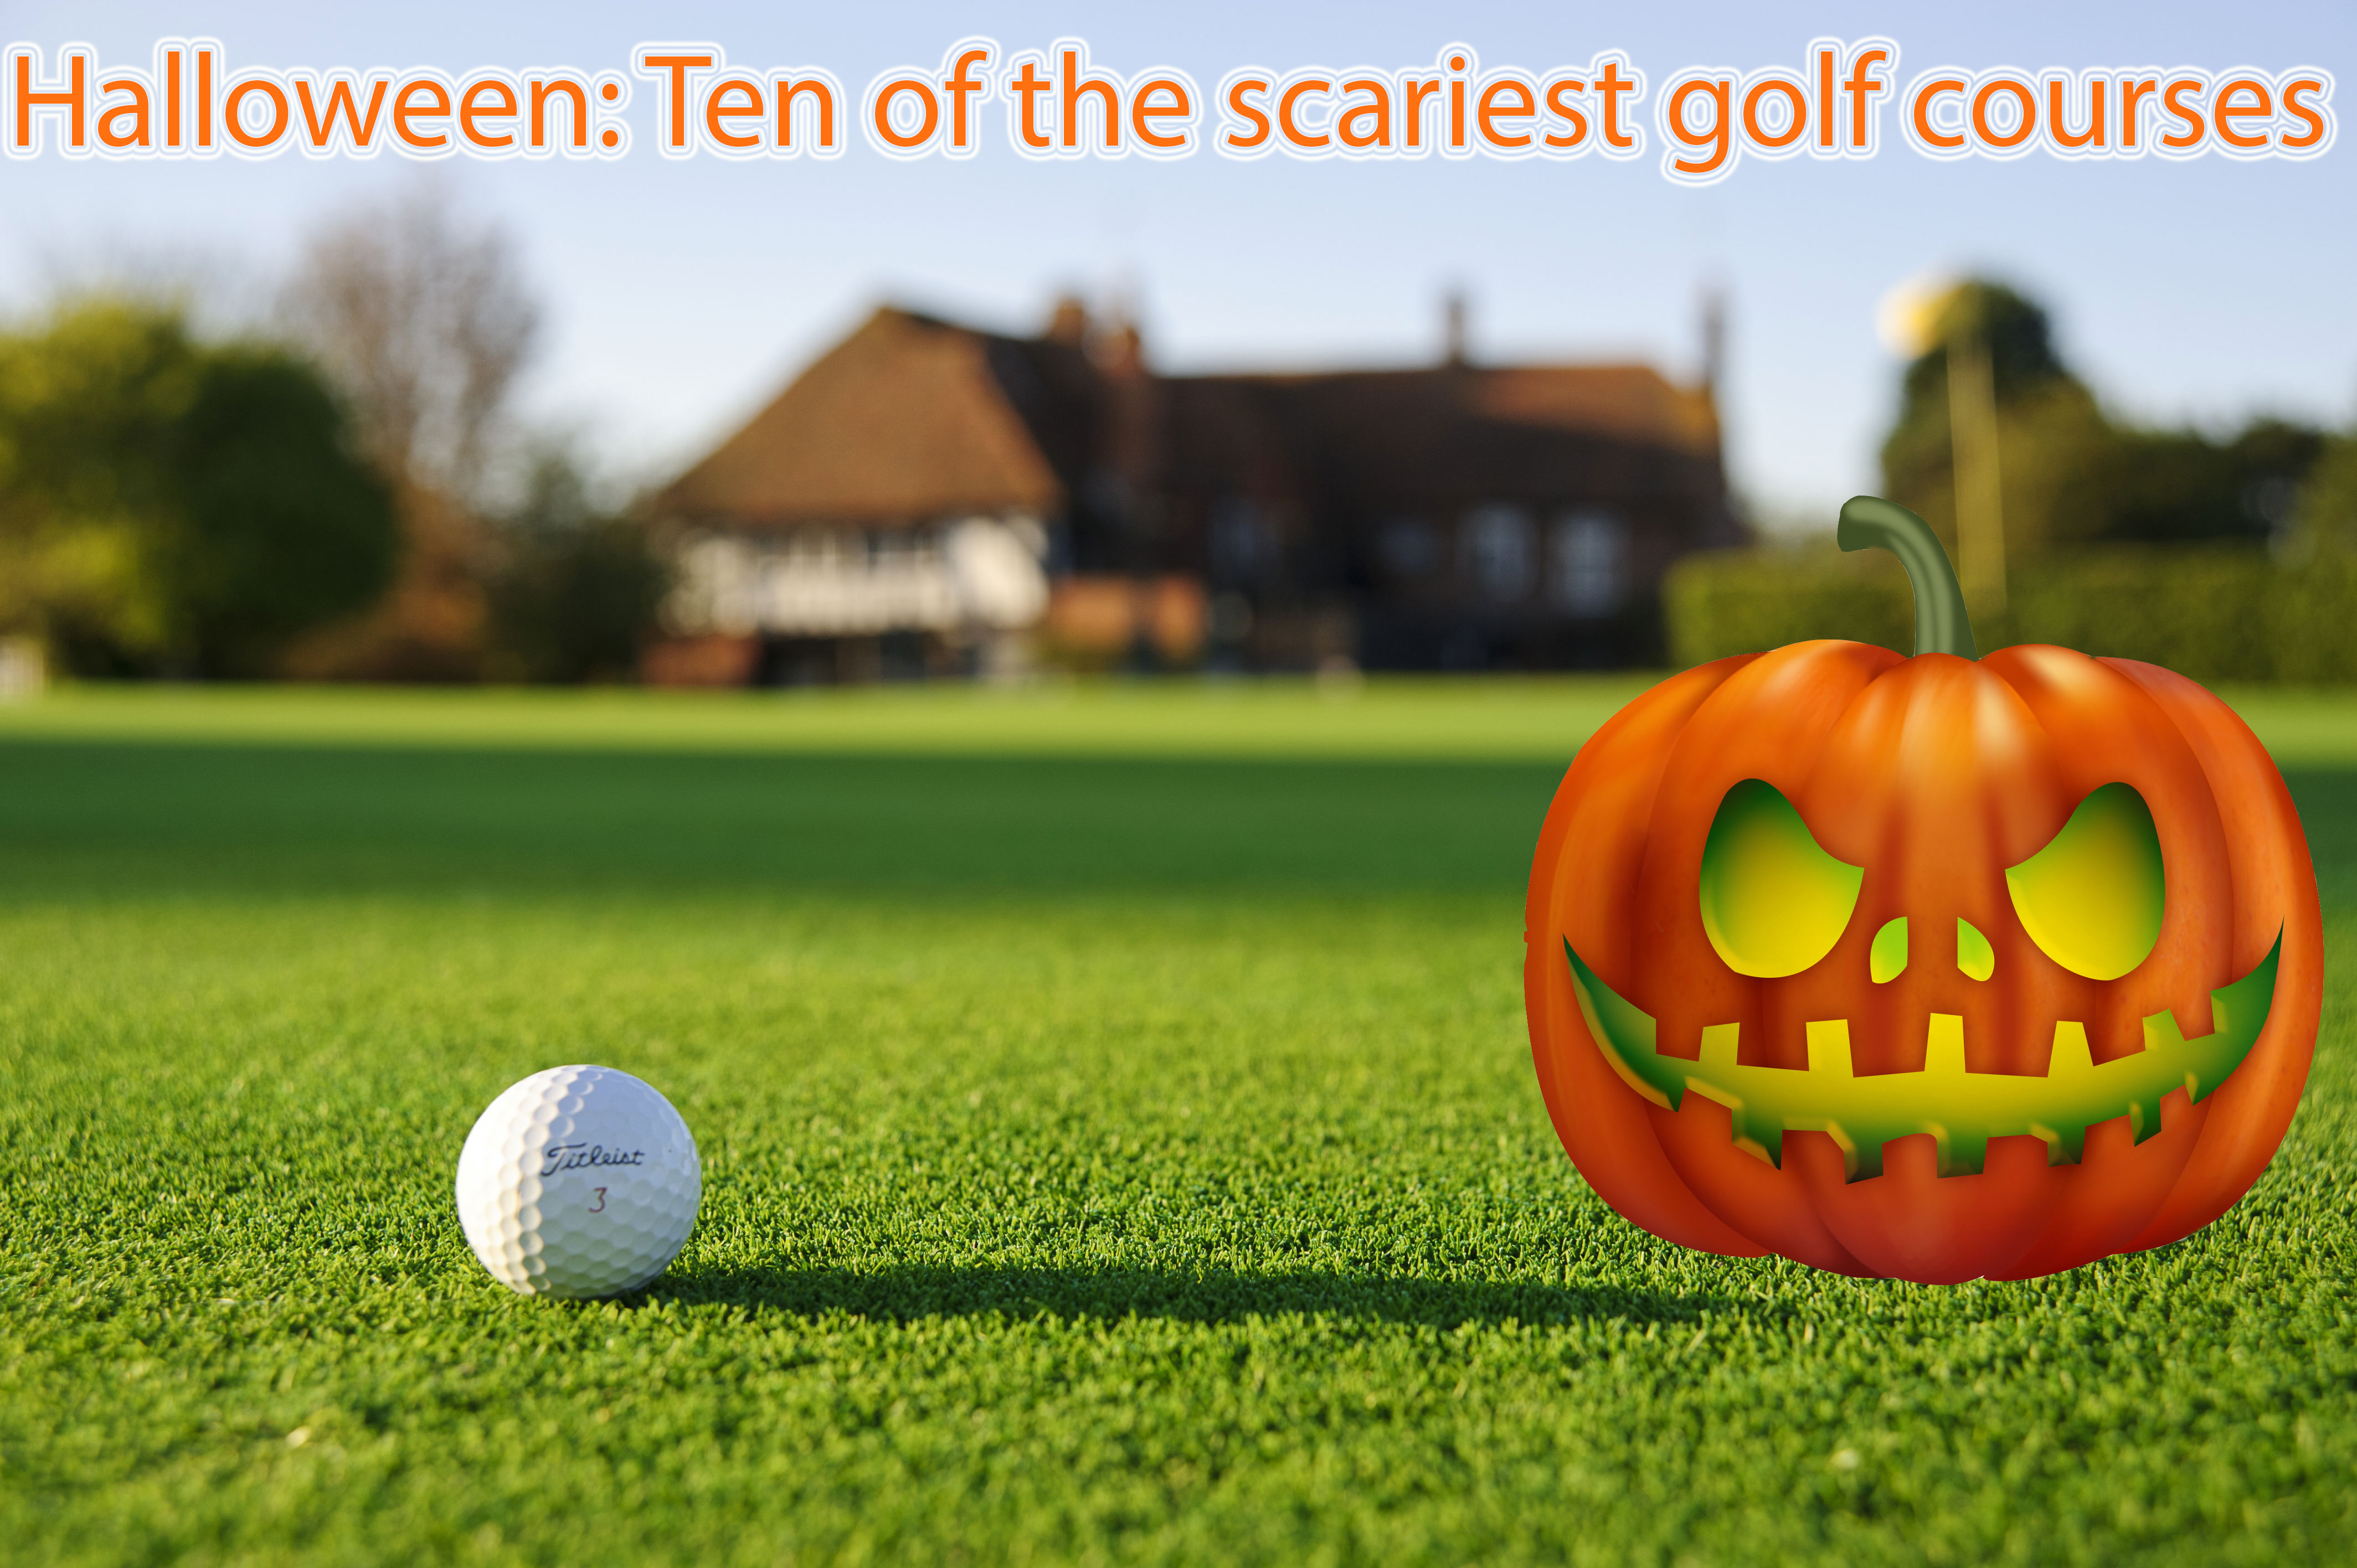 Halloween Special: Golf's Scariest Courses